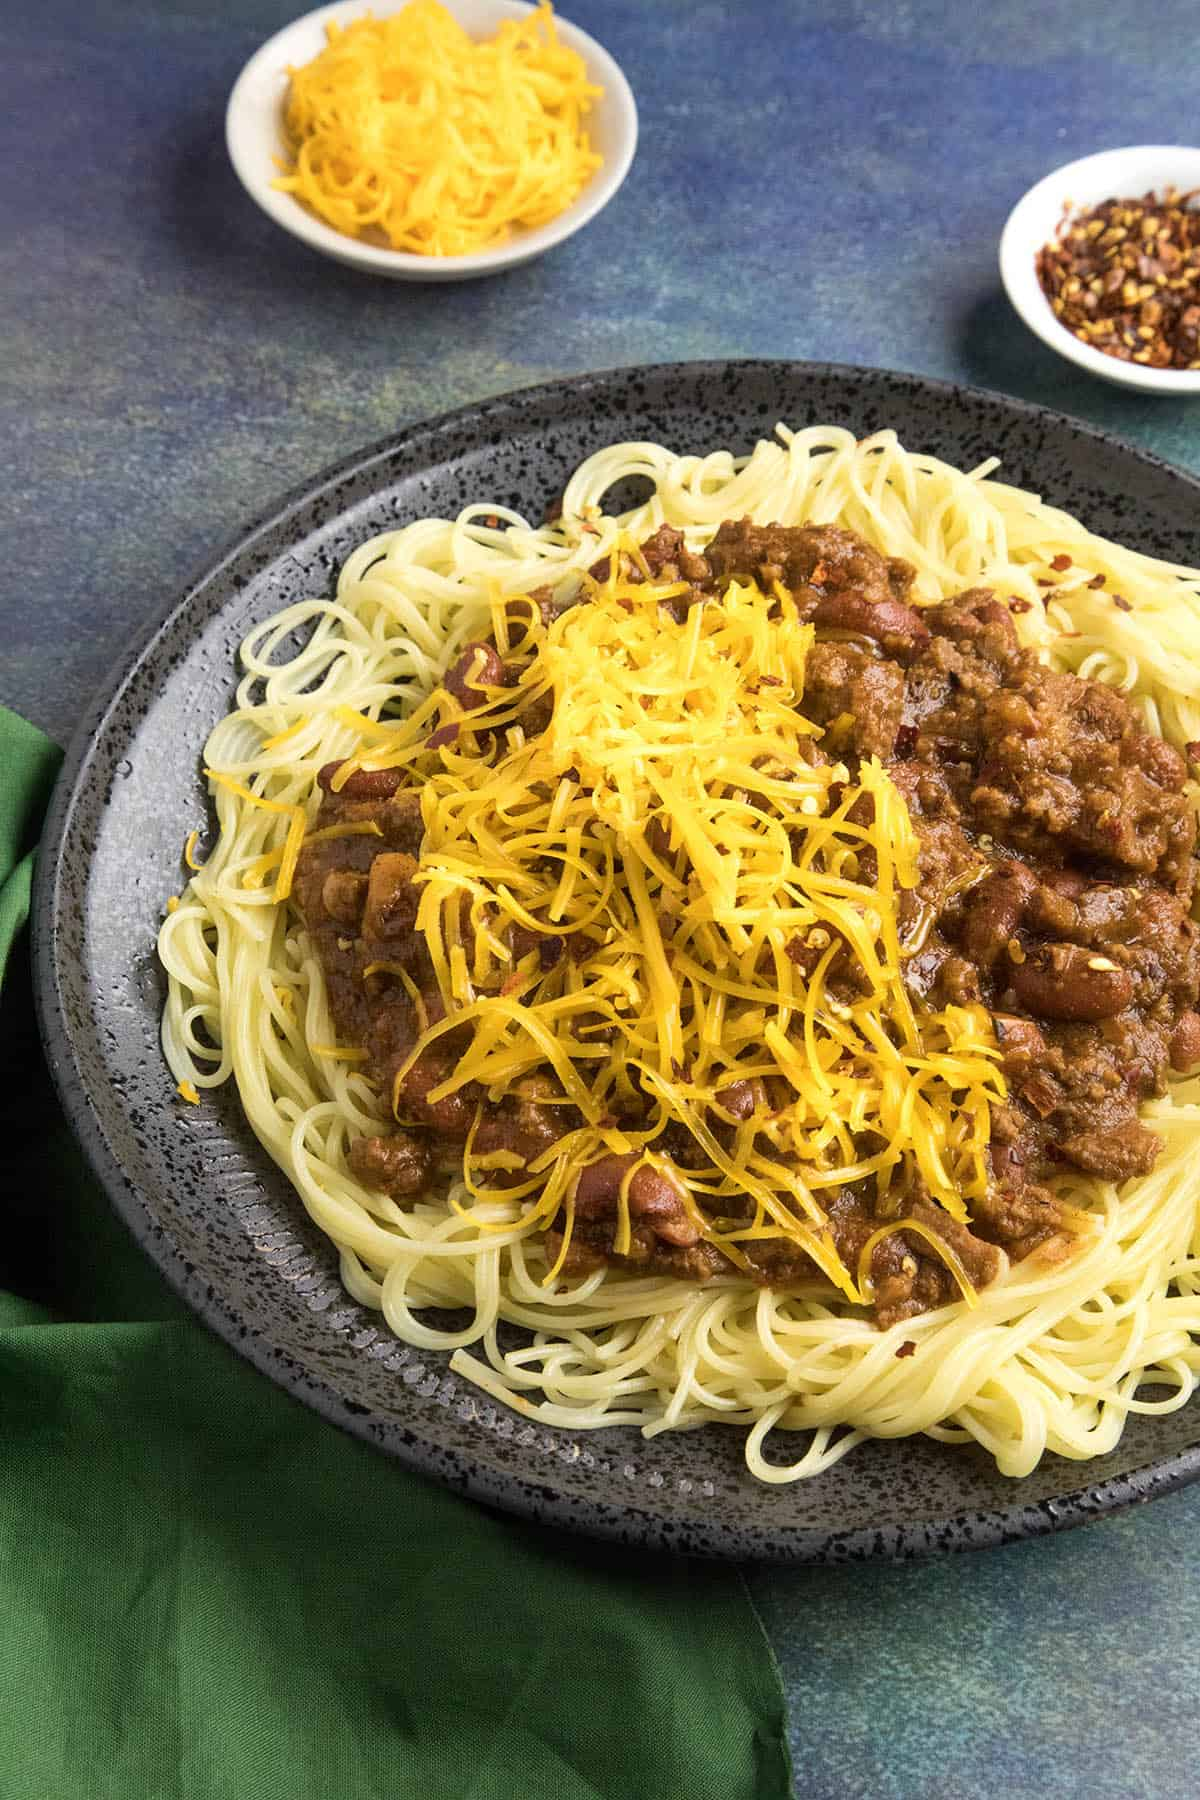 Cincinnati Chili on a plate of noodles with shredded cheddar cheese over the top, ready to eat